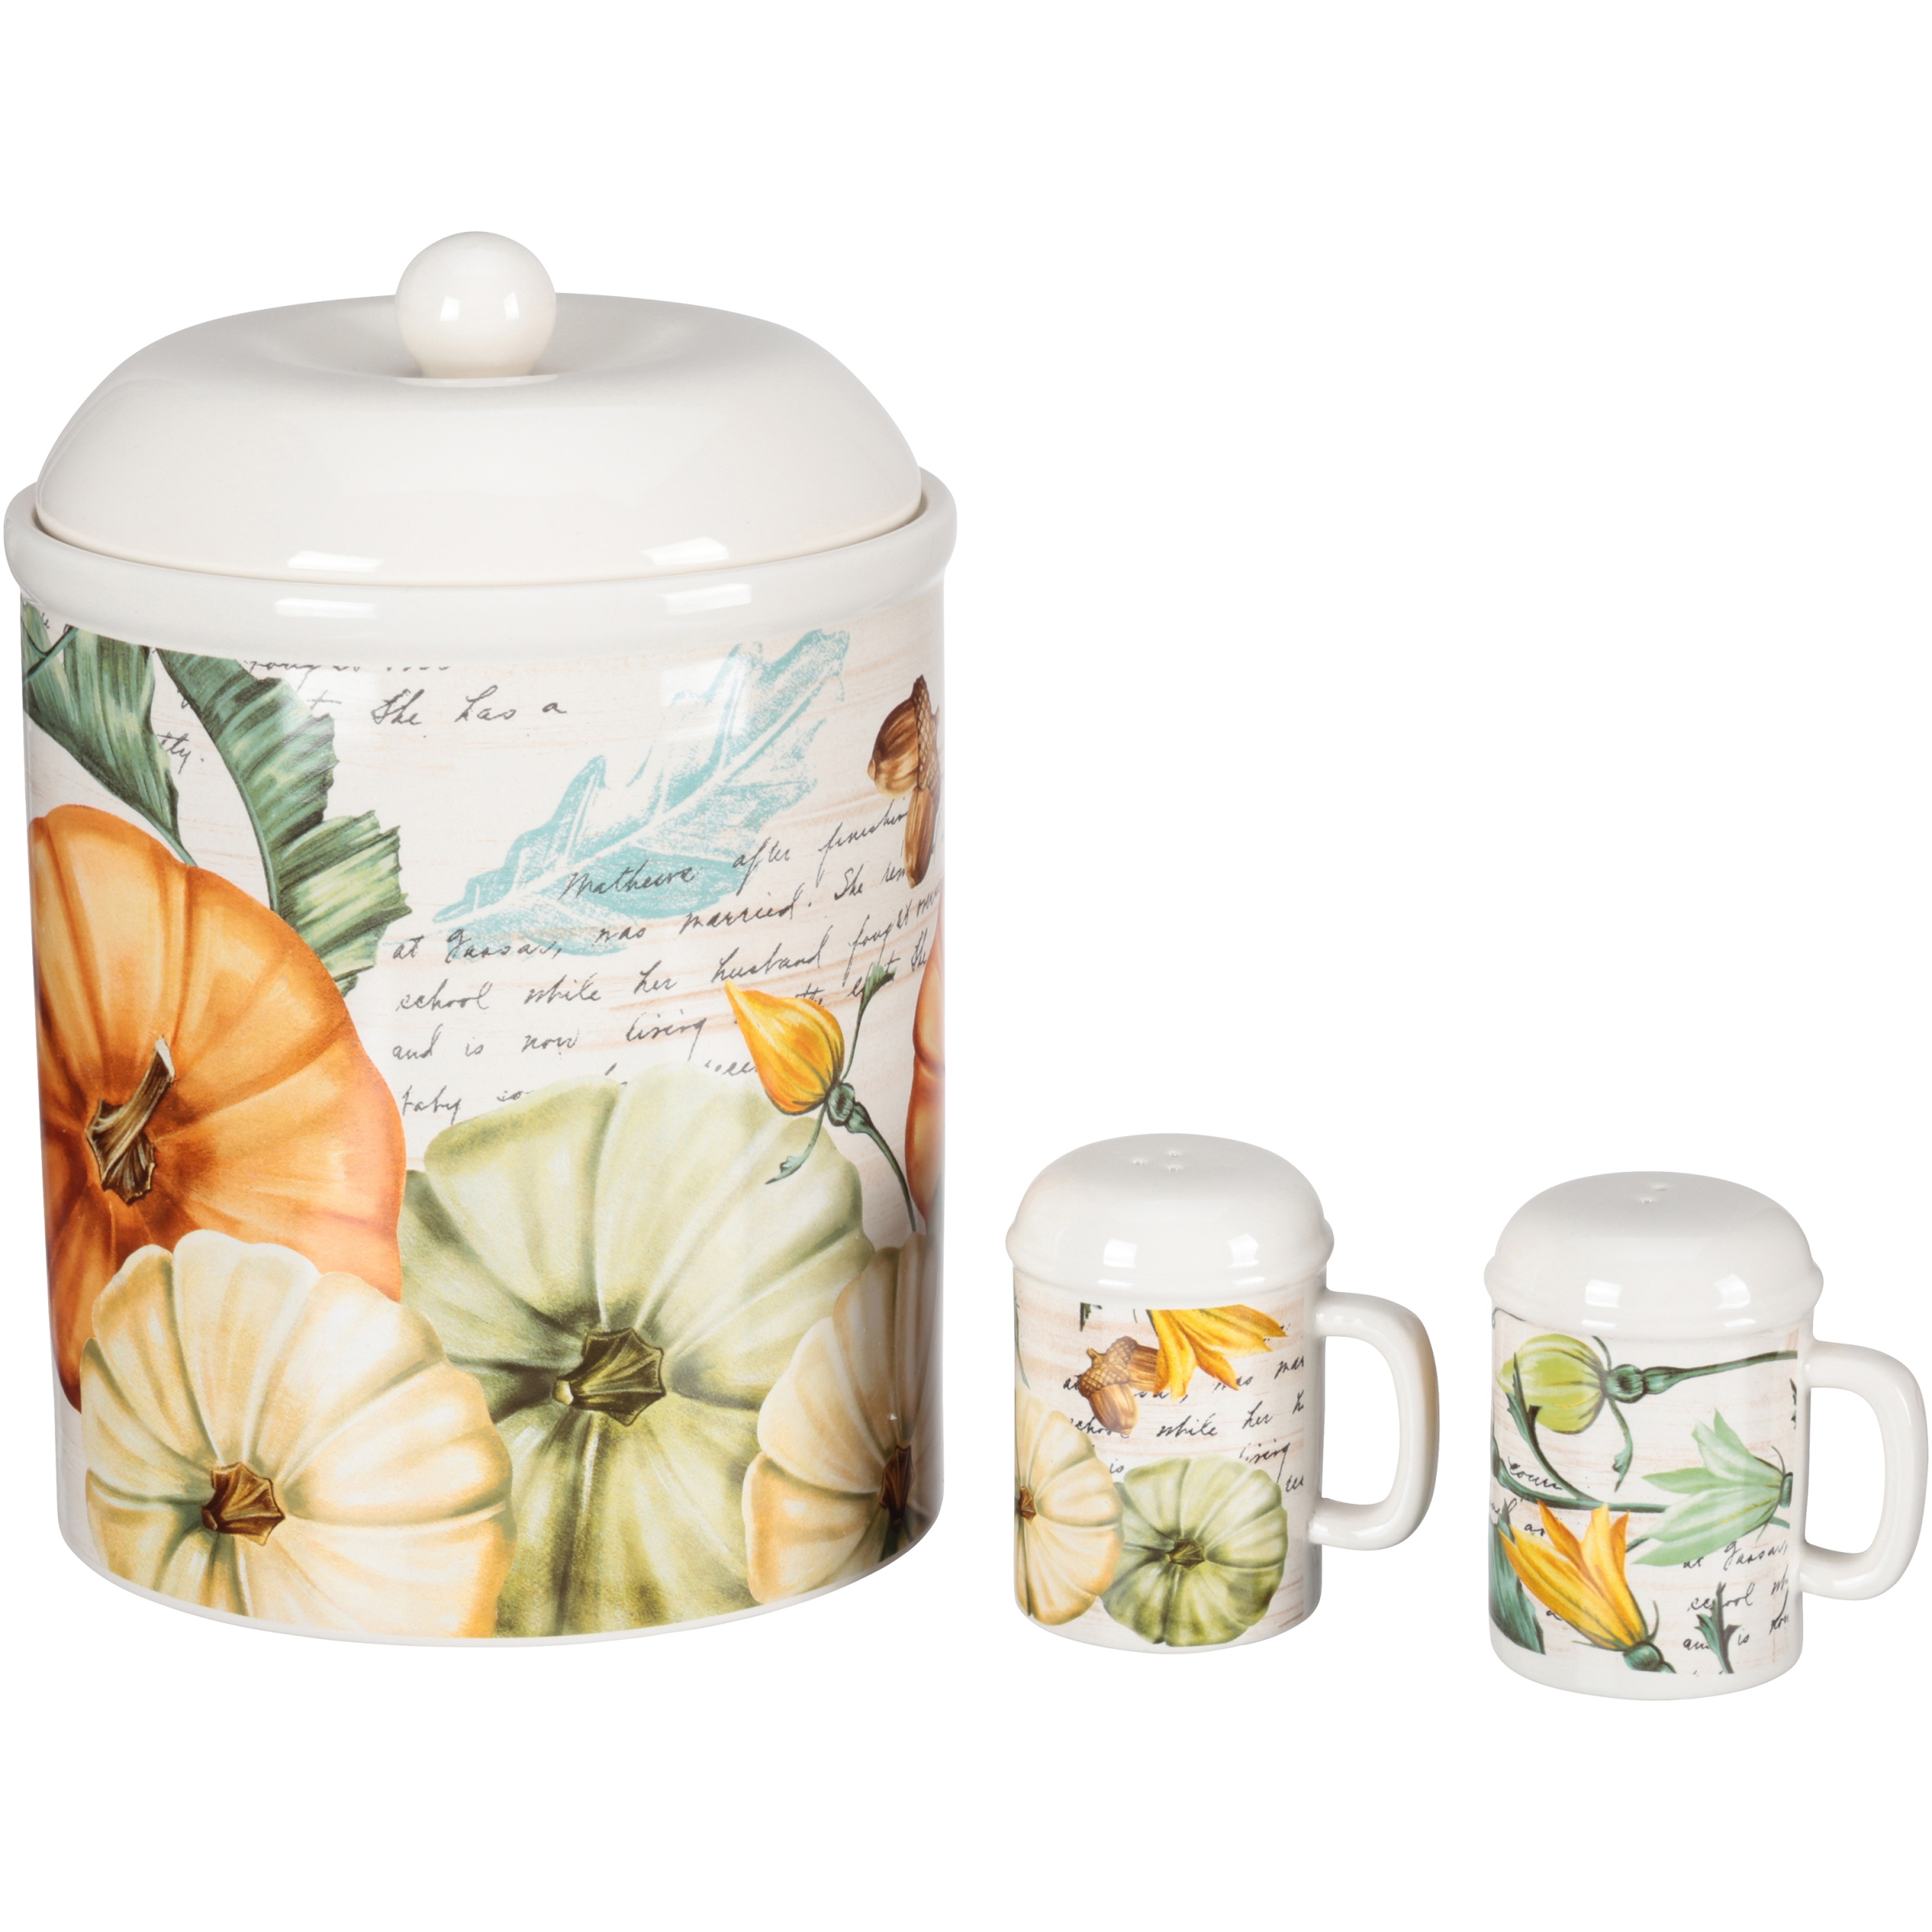 Mainstays Earthenware Cookie Jar S&P 3 pc Set Box by Wal-Mart Stores, Inc.